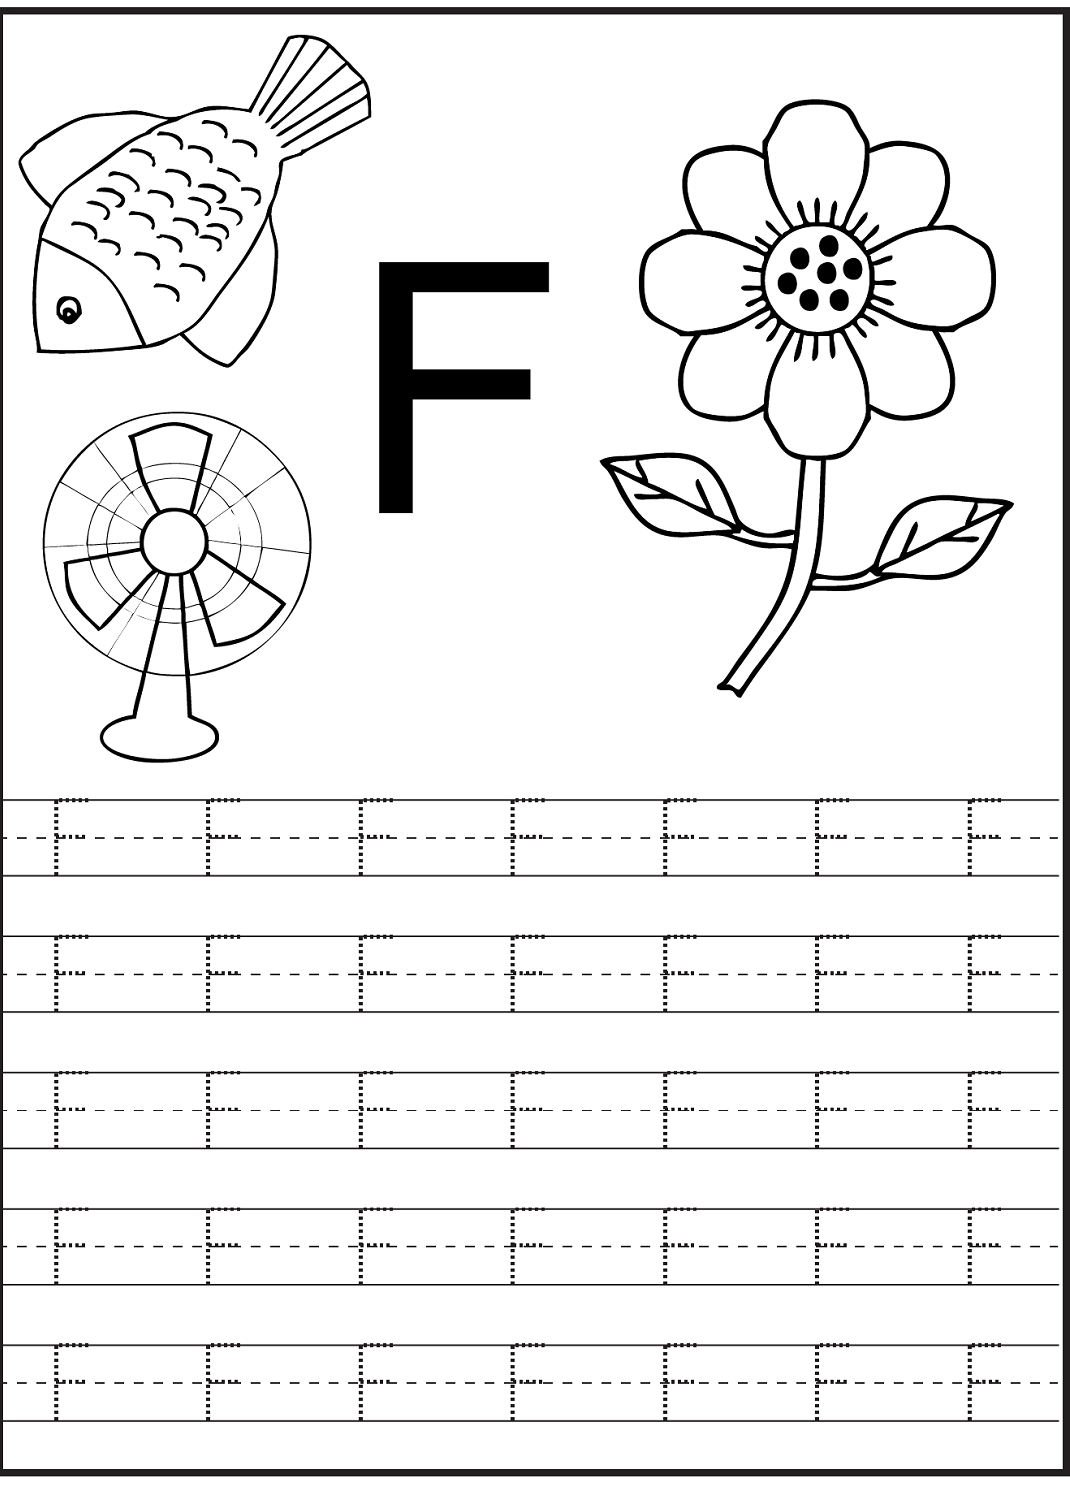 Worksheet Alphabet Worksheets For Preschool Grass Fedjp